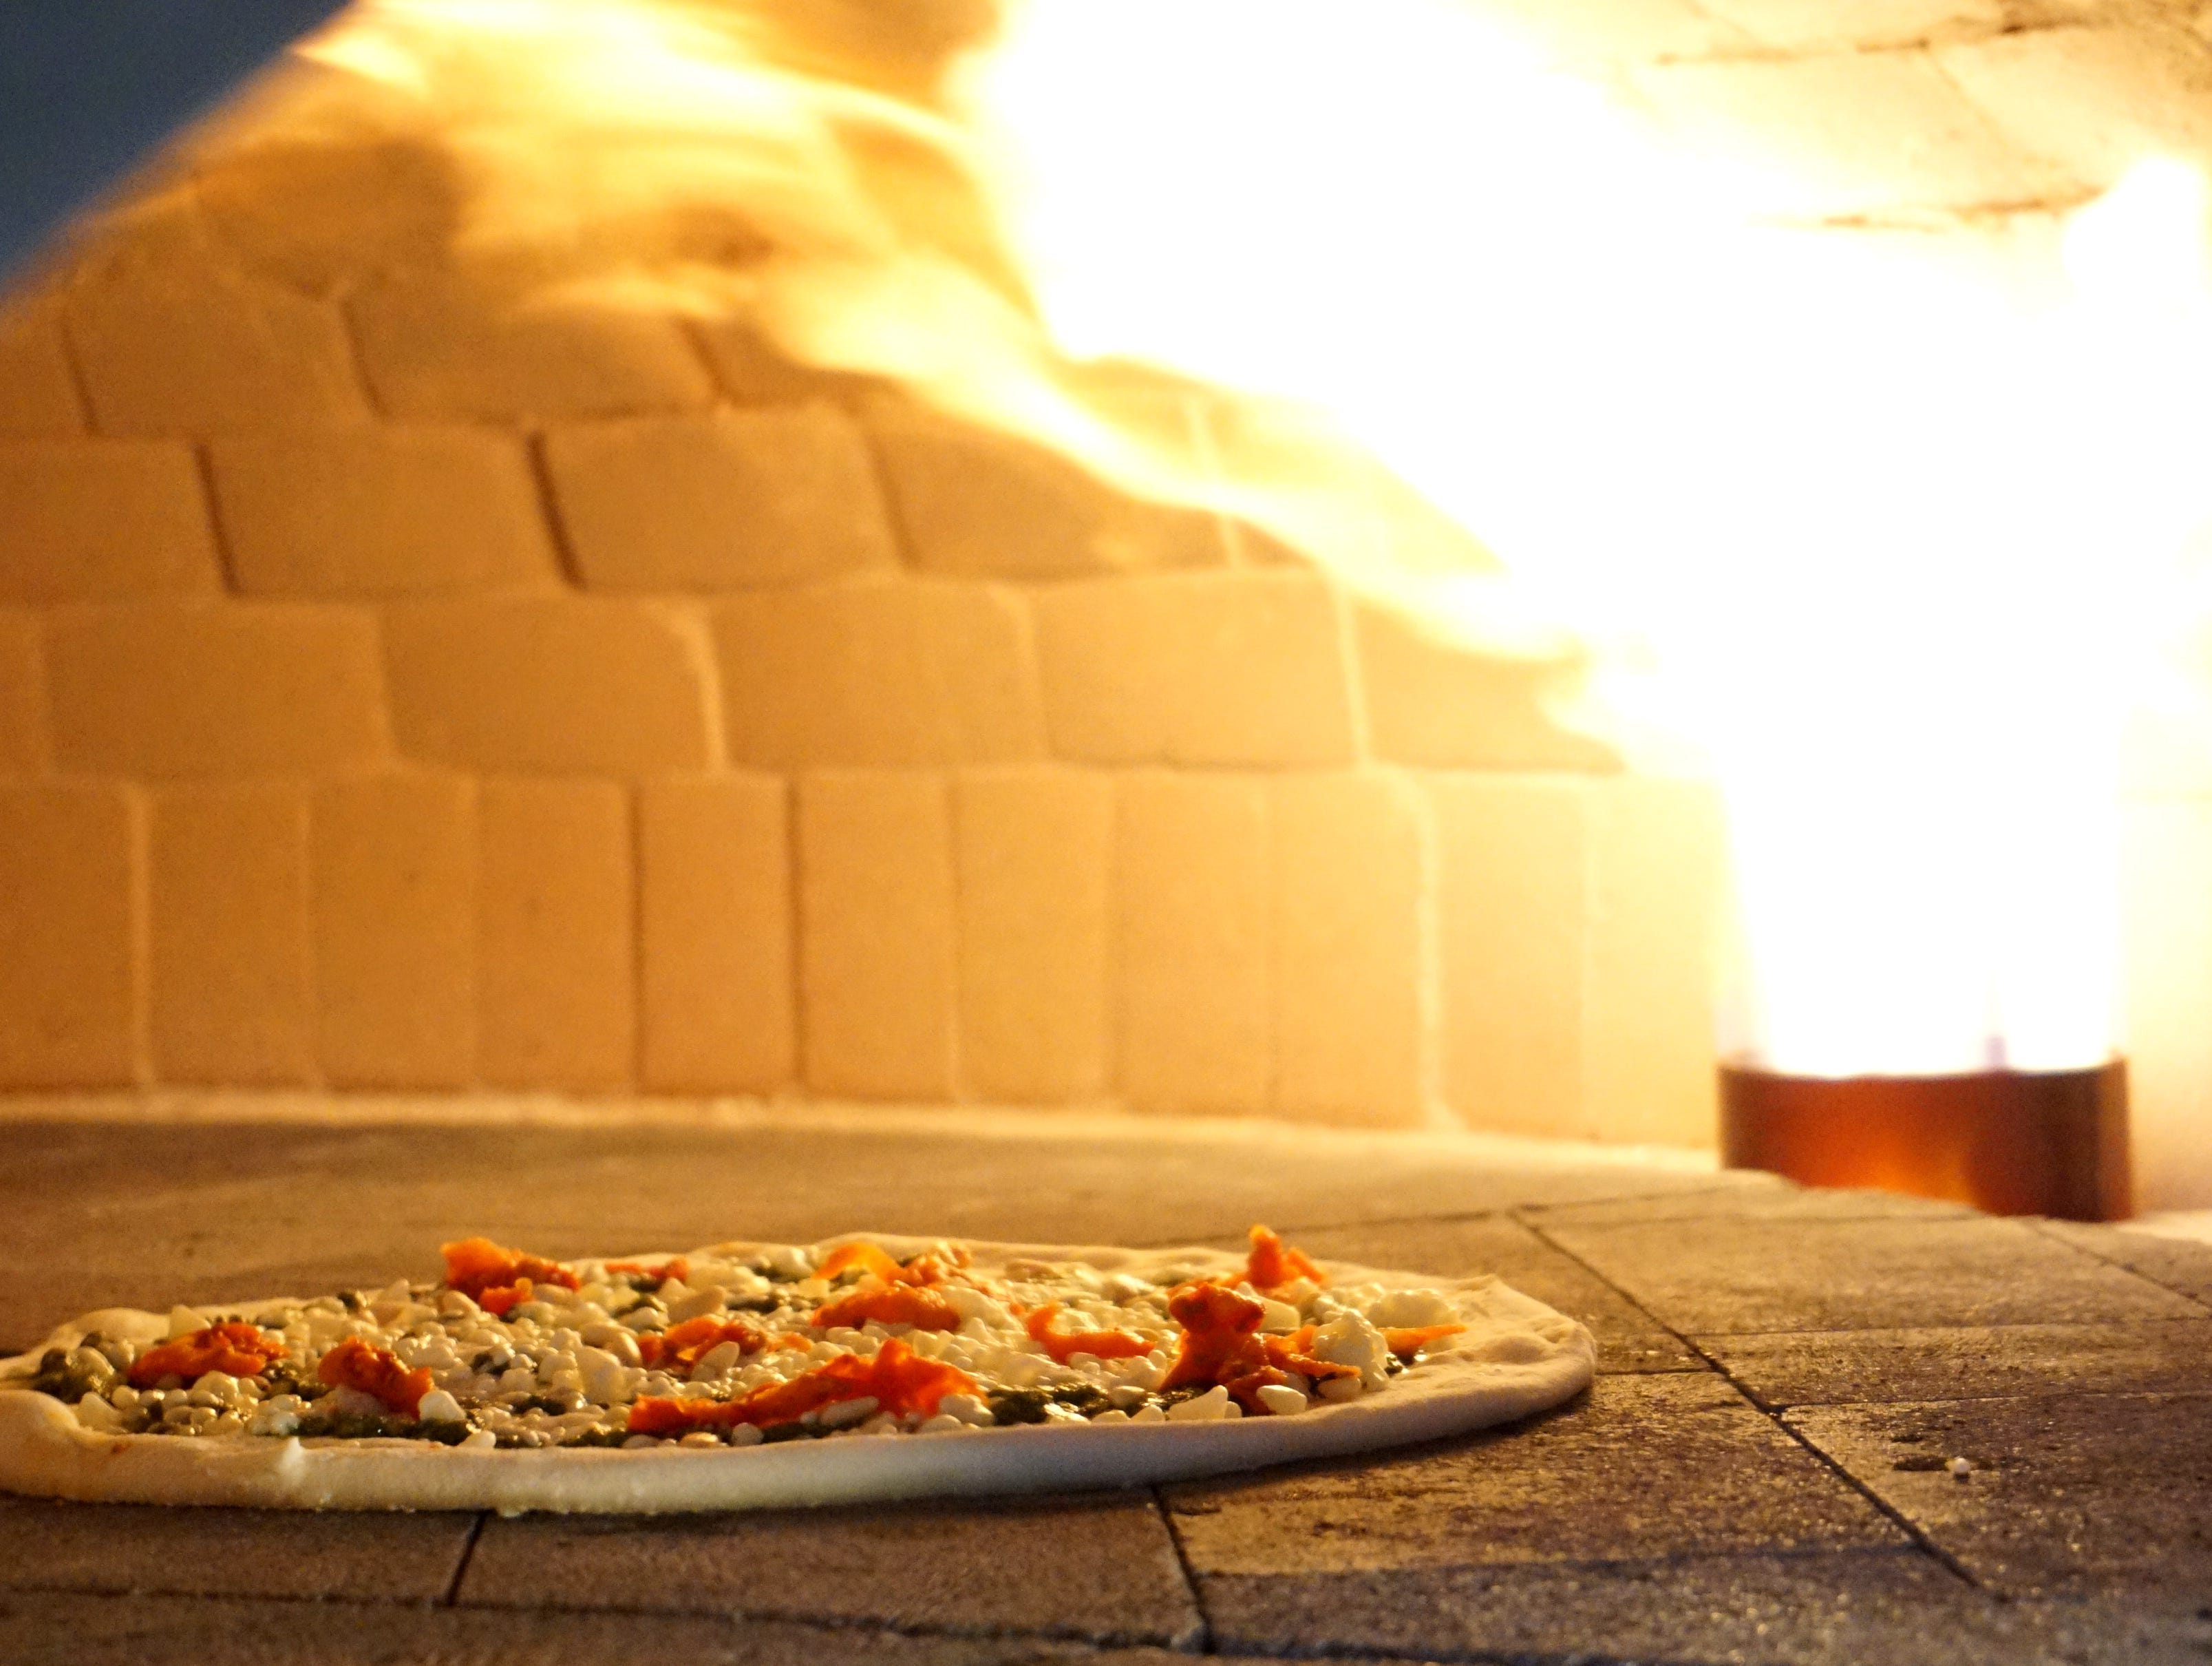 A sundried tomato pizza enters the 900 degree oven at Bigalora on Feb. 1 at lunch time. The oven, with a ceramic base that rotates, is gas-fired and most pizzas make on 90 second circumnavigation of the oven and are ready at that point.